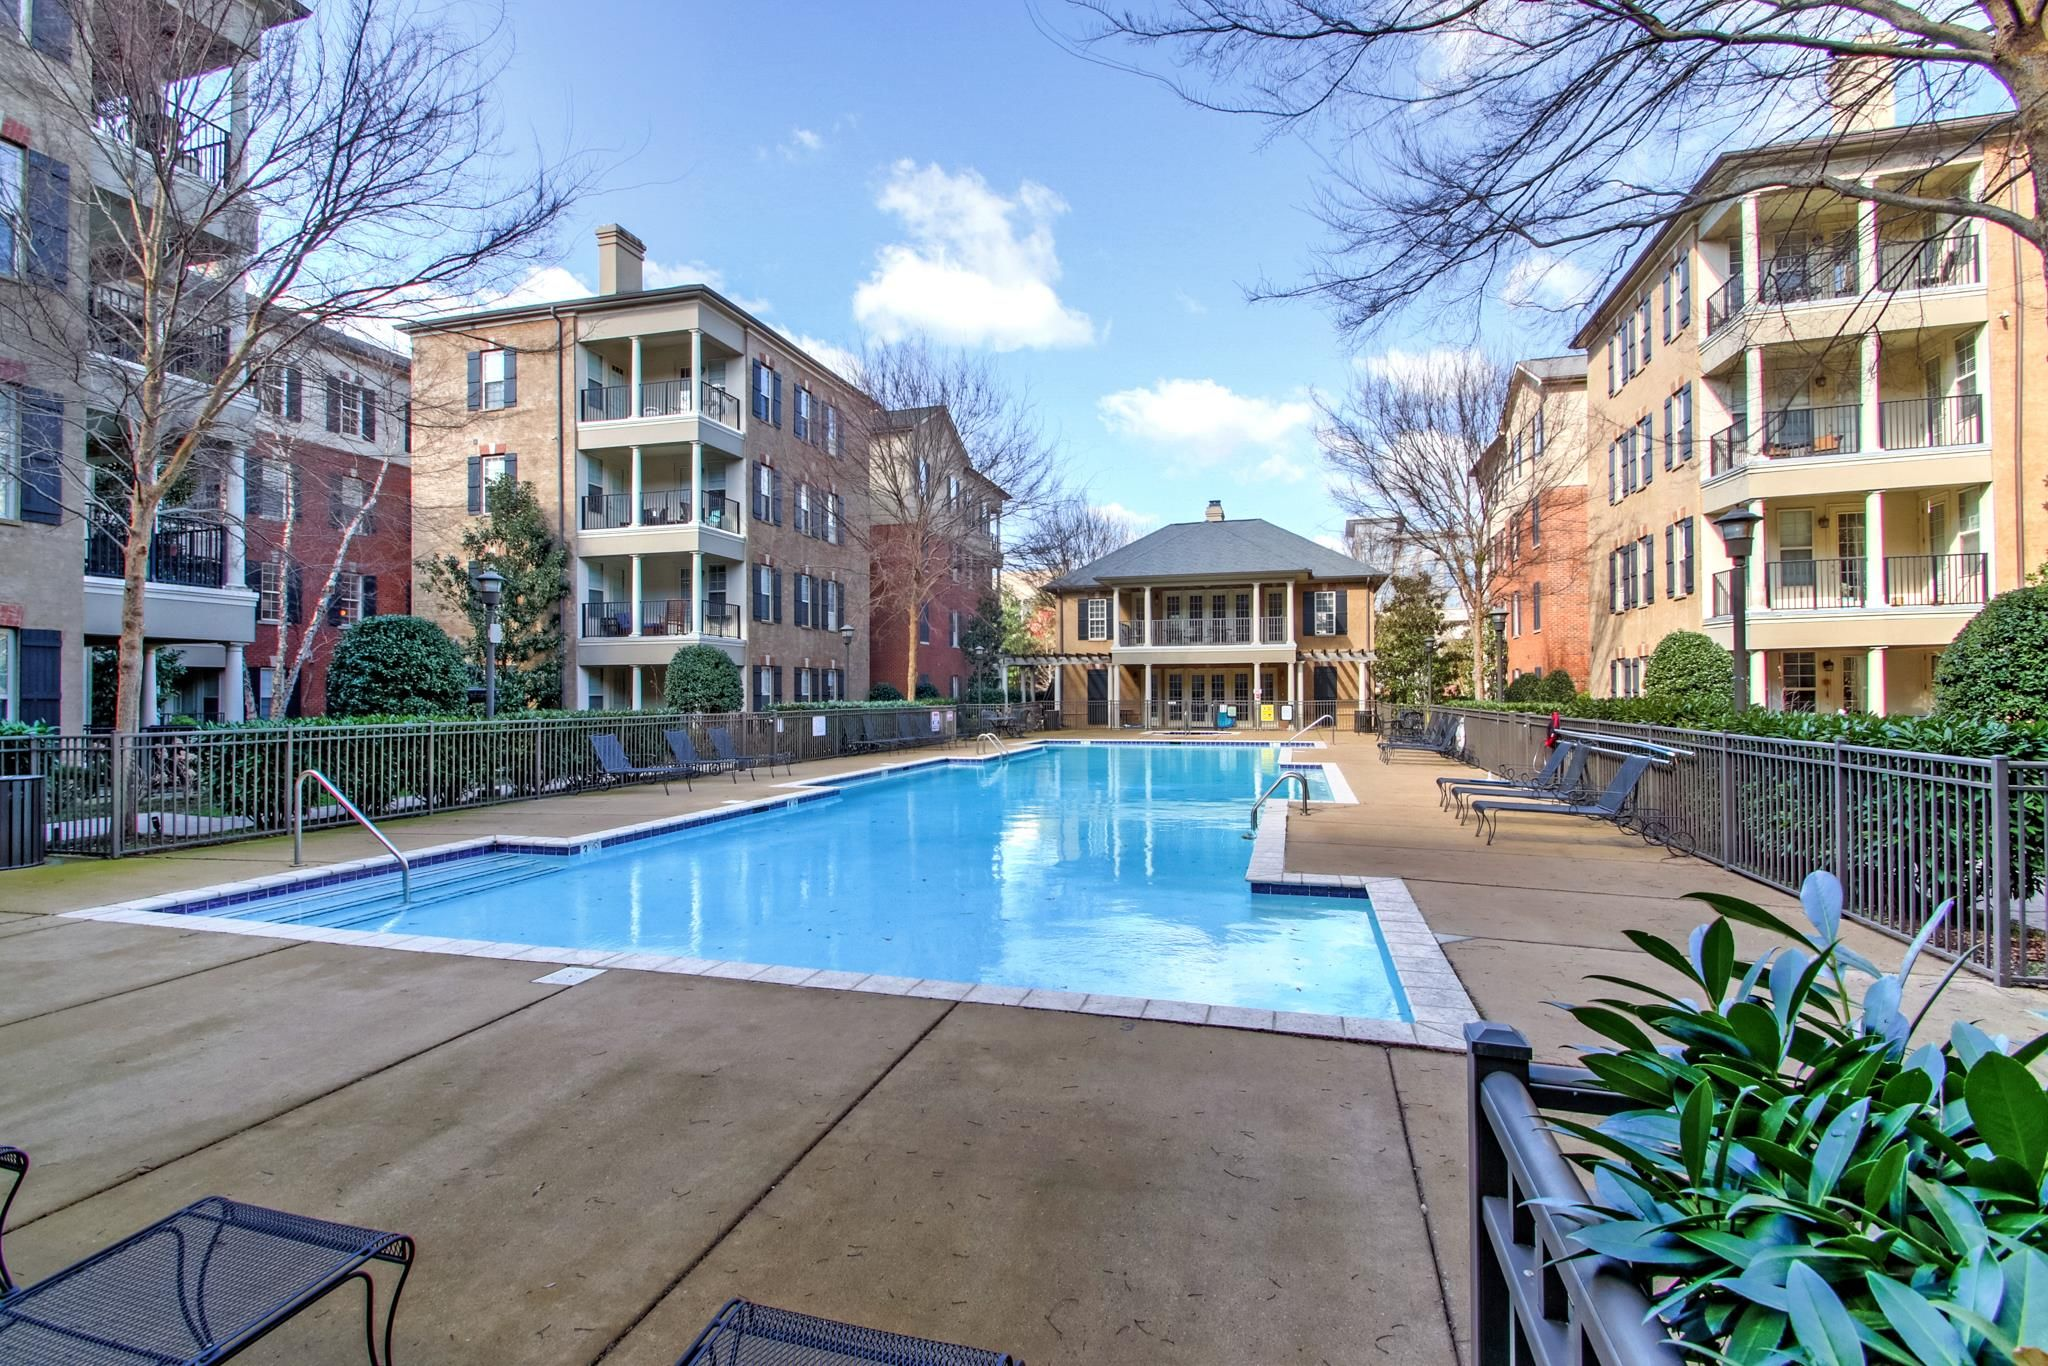 305 Seven Springs Way Unit 203 Brentwood Tn 37027 2 Bed 2 Bath